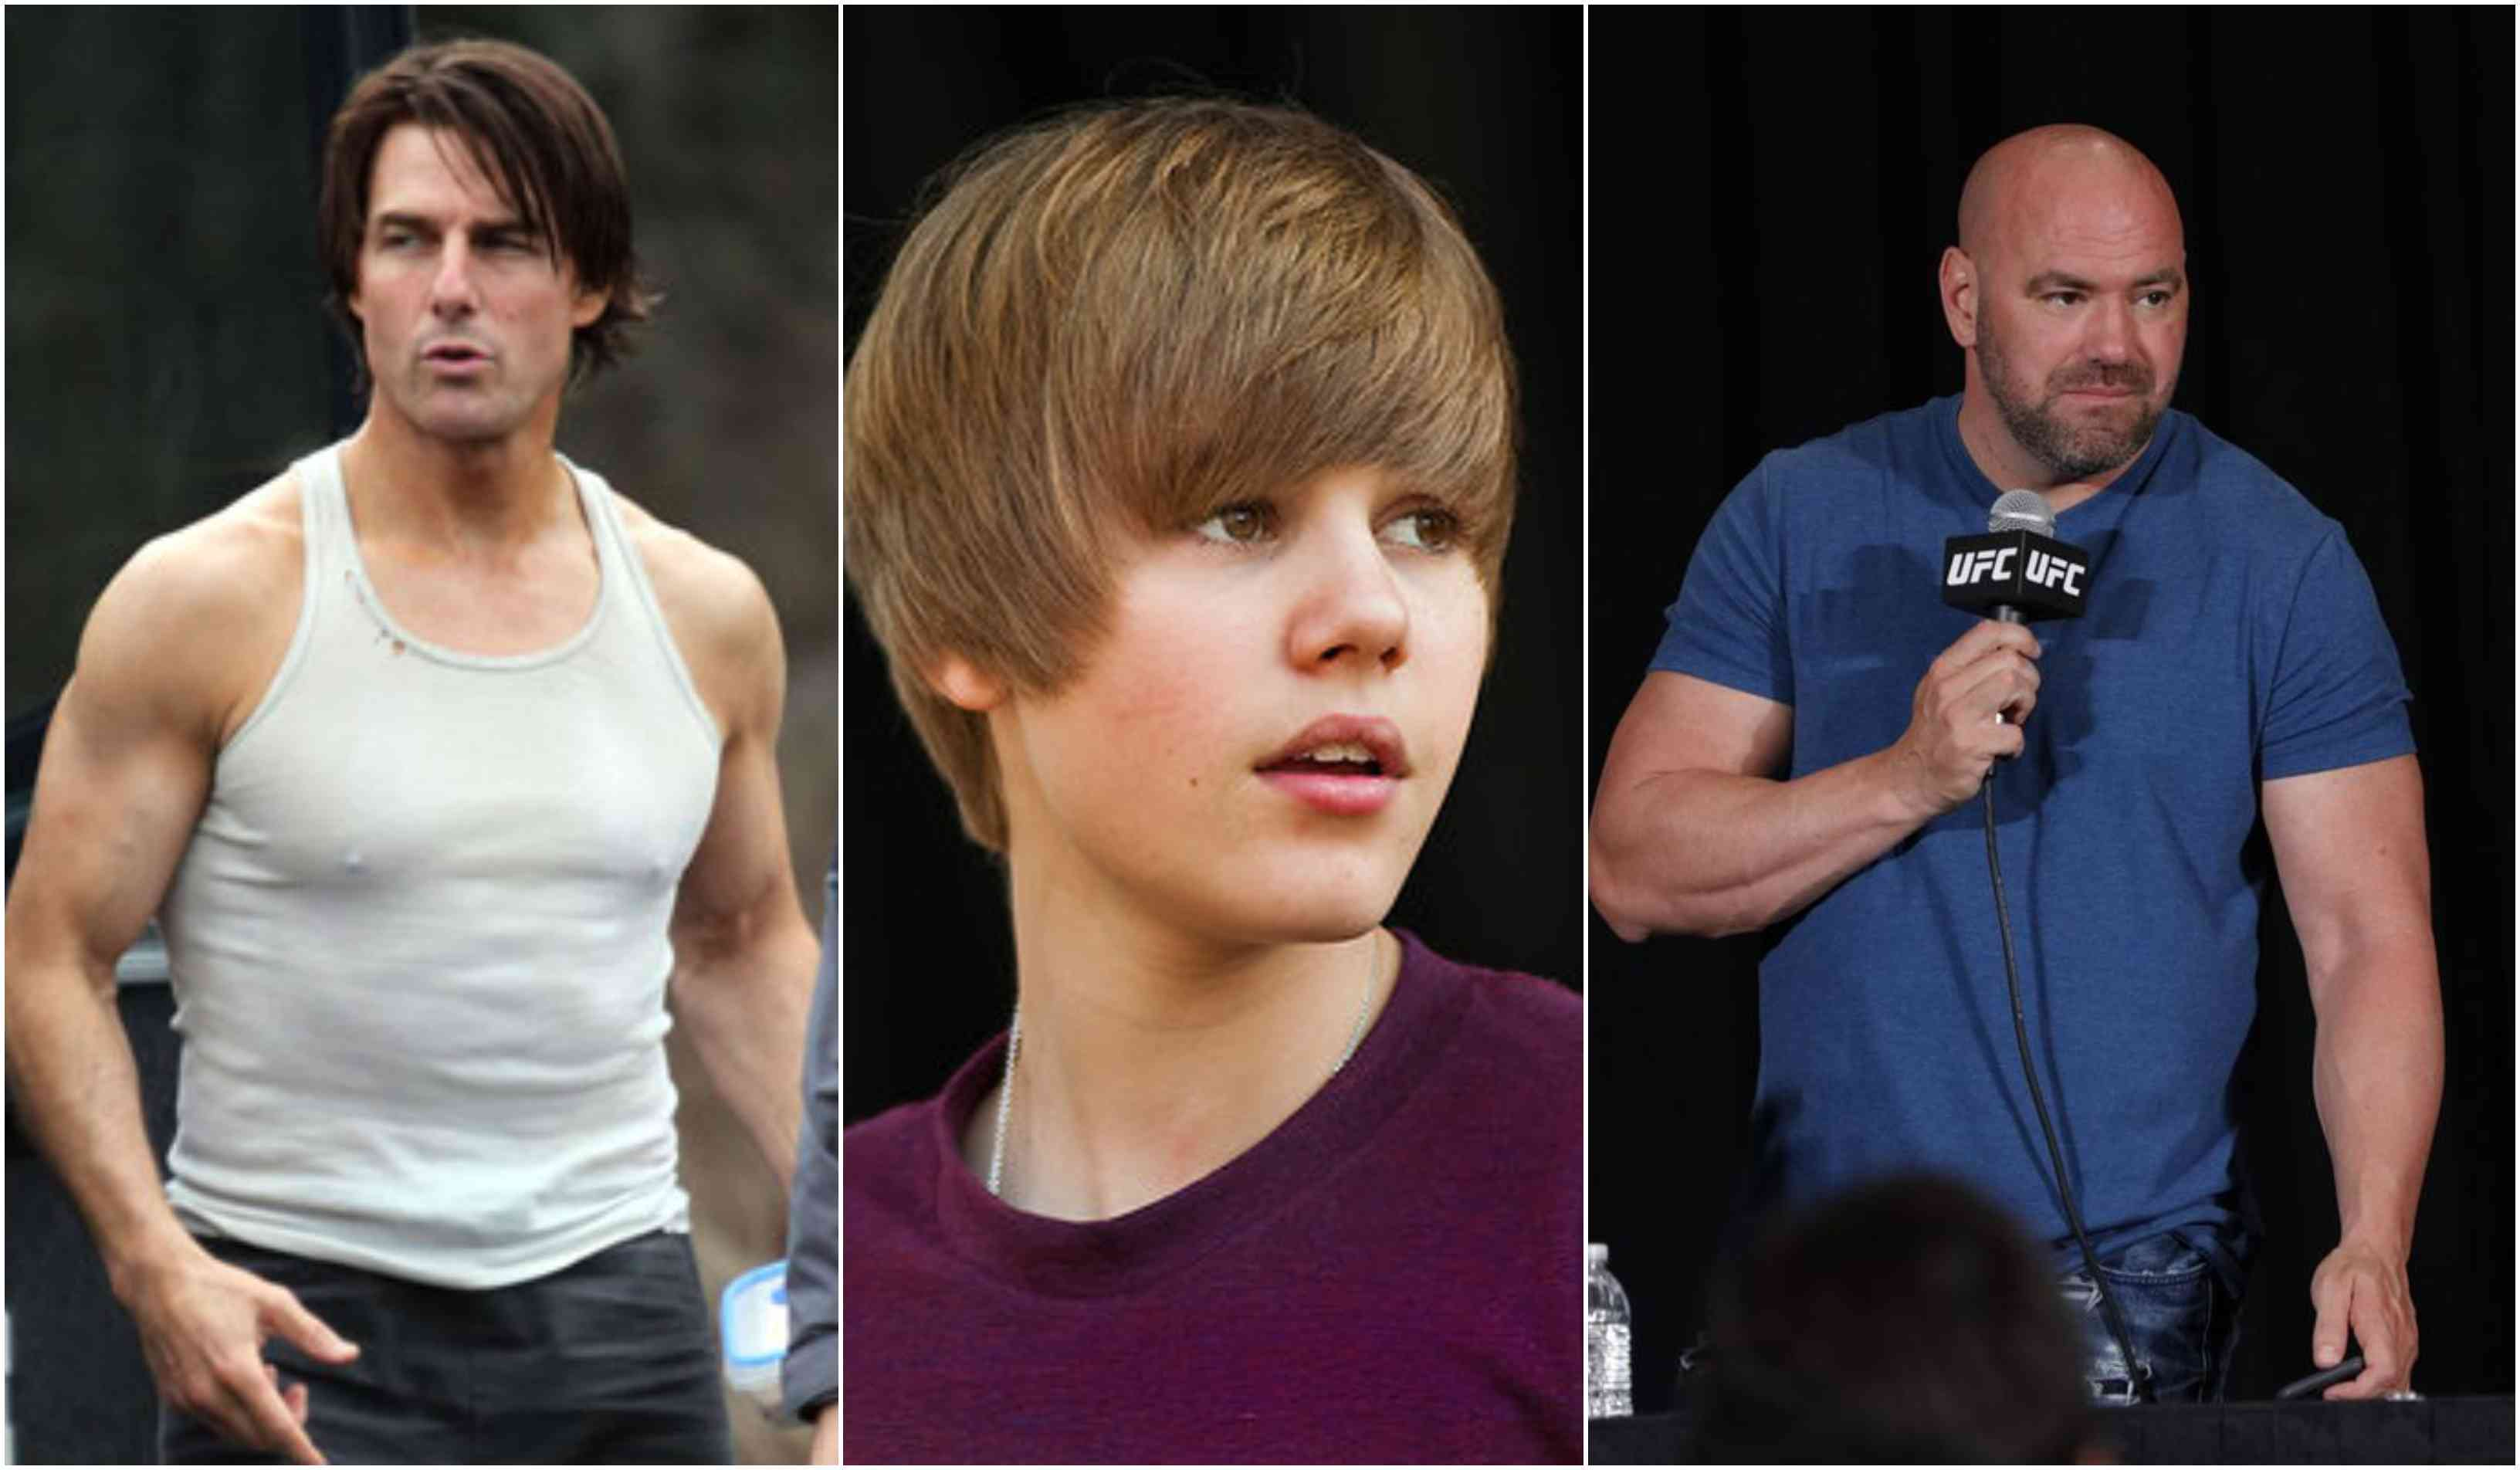 Dana White interested in promoting Justin Bieber vs Tom Cruise - Justin